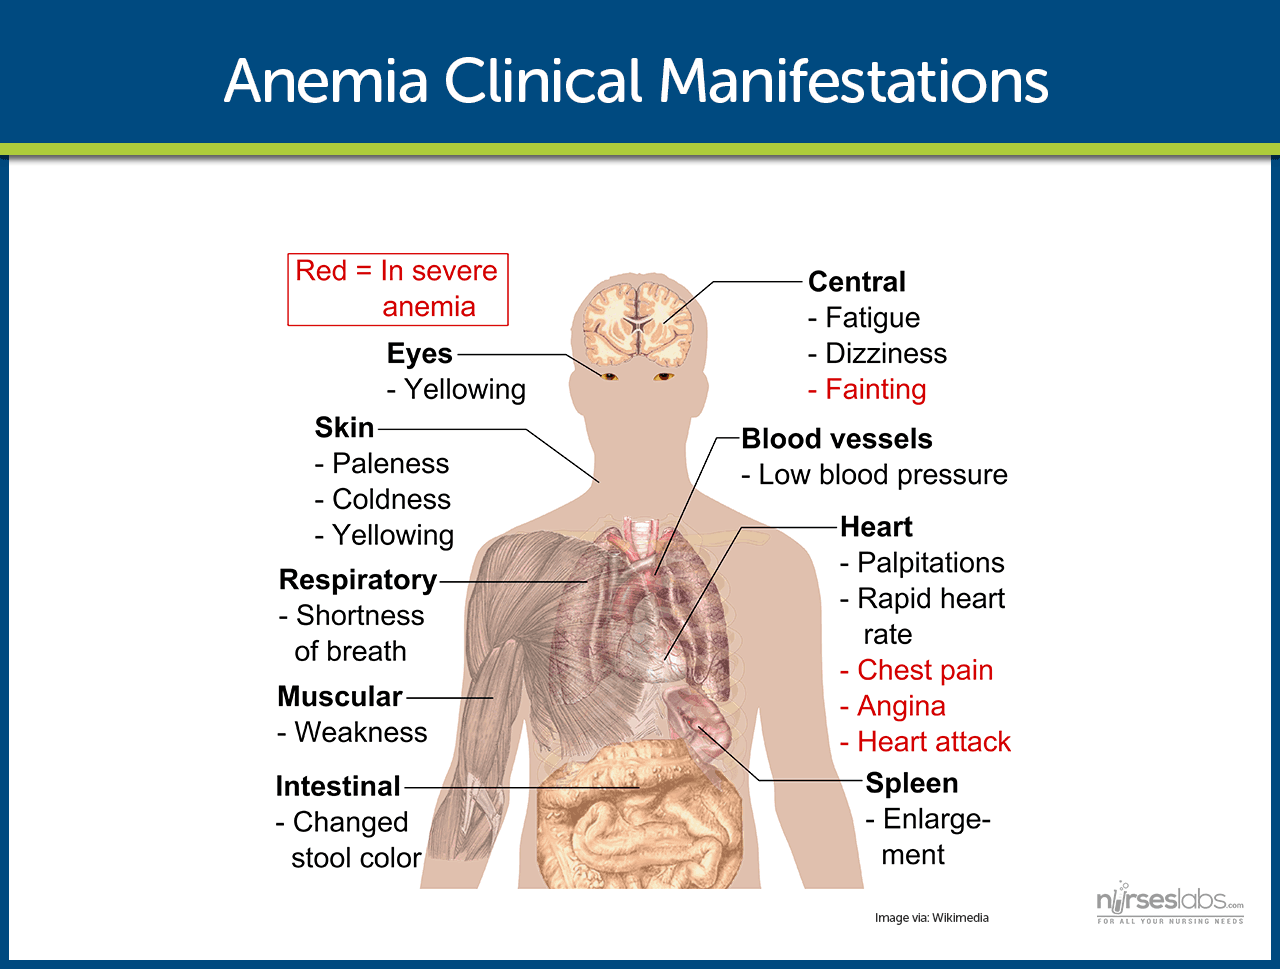 Anemia Clinical Manifestations